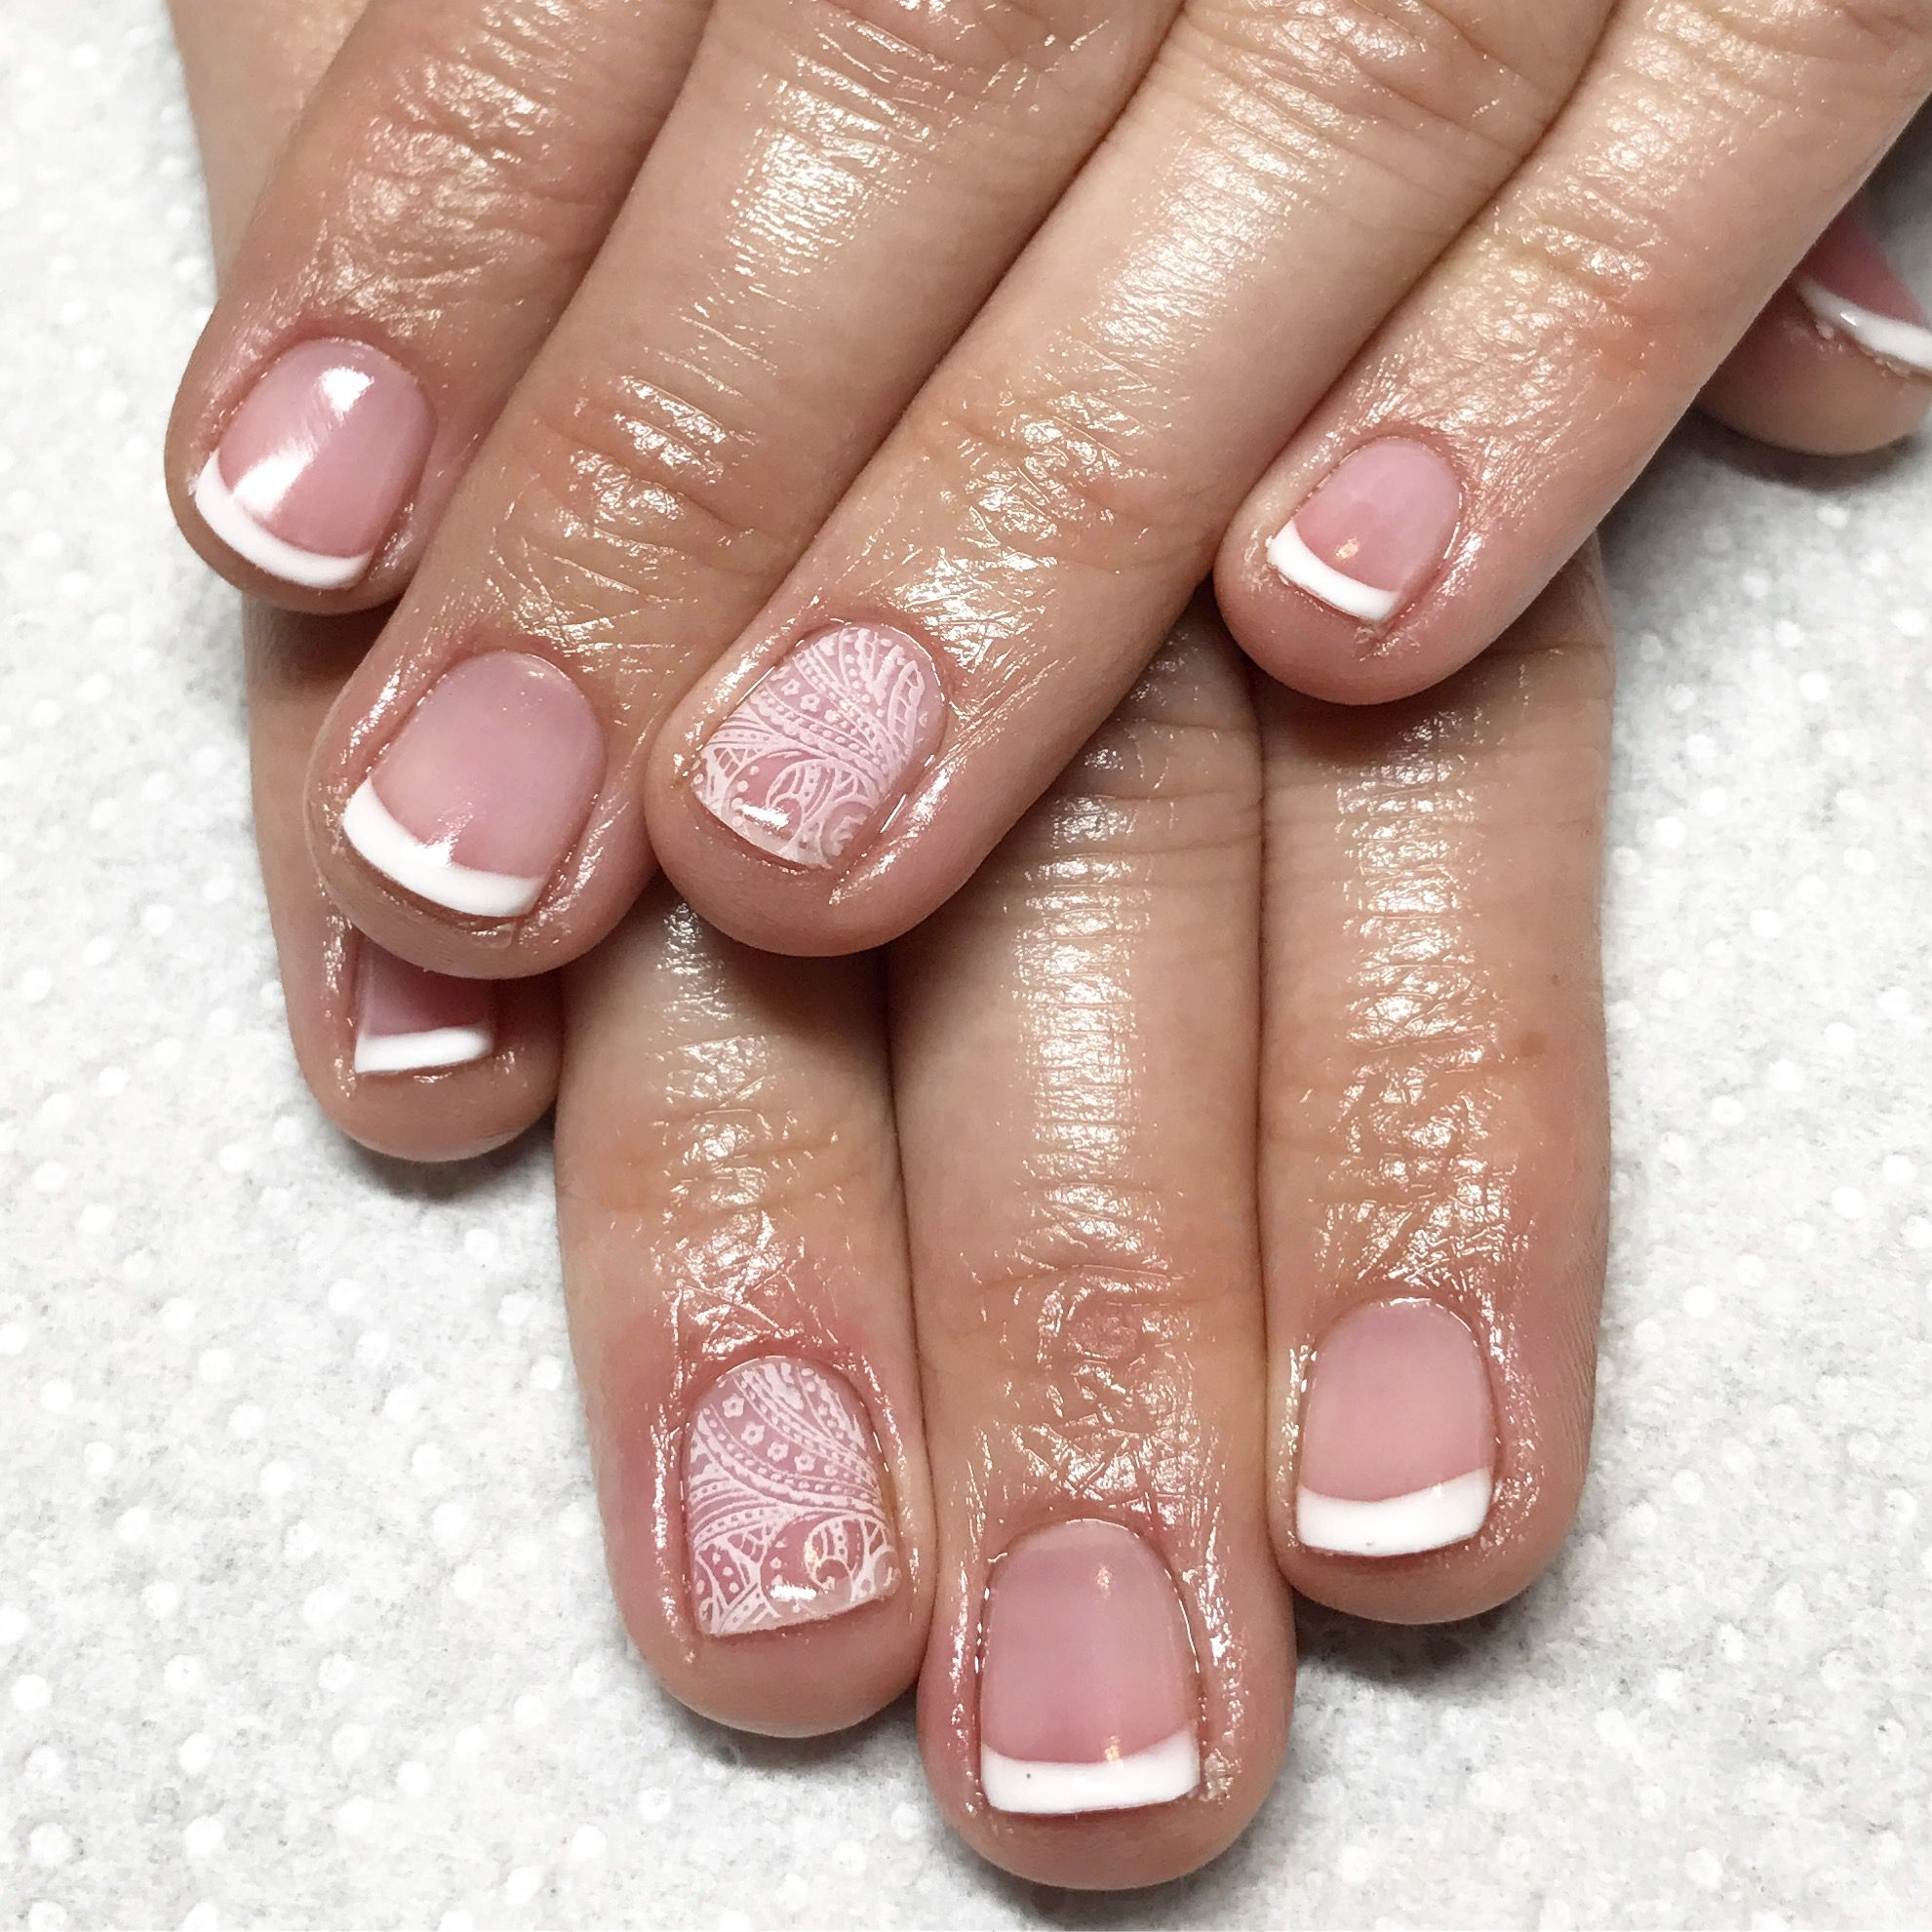 French Manicure Pink And White Nails Gel Short Natural Spring Summer Simple